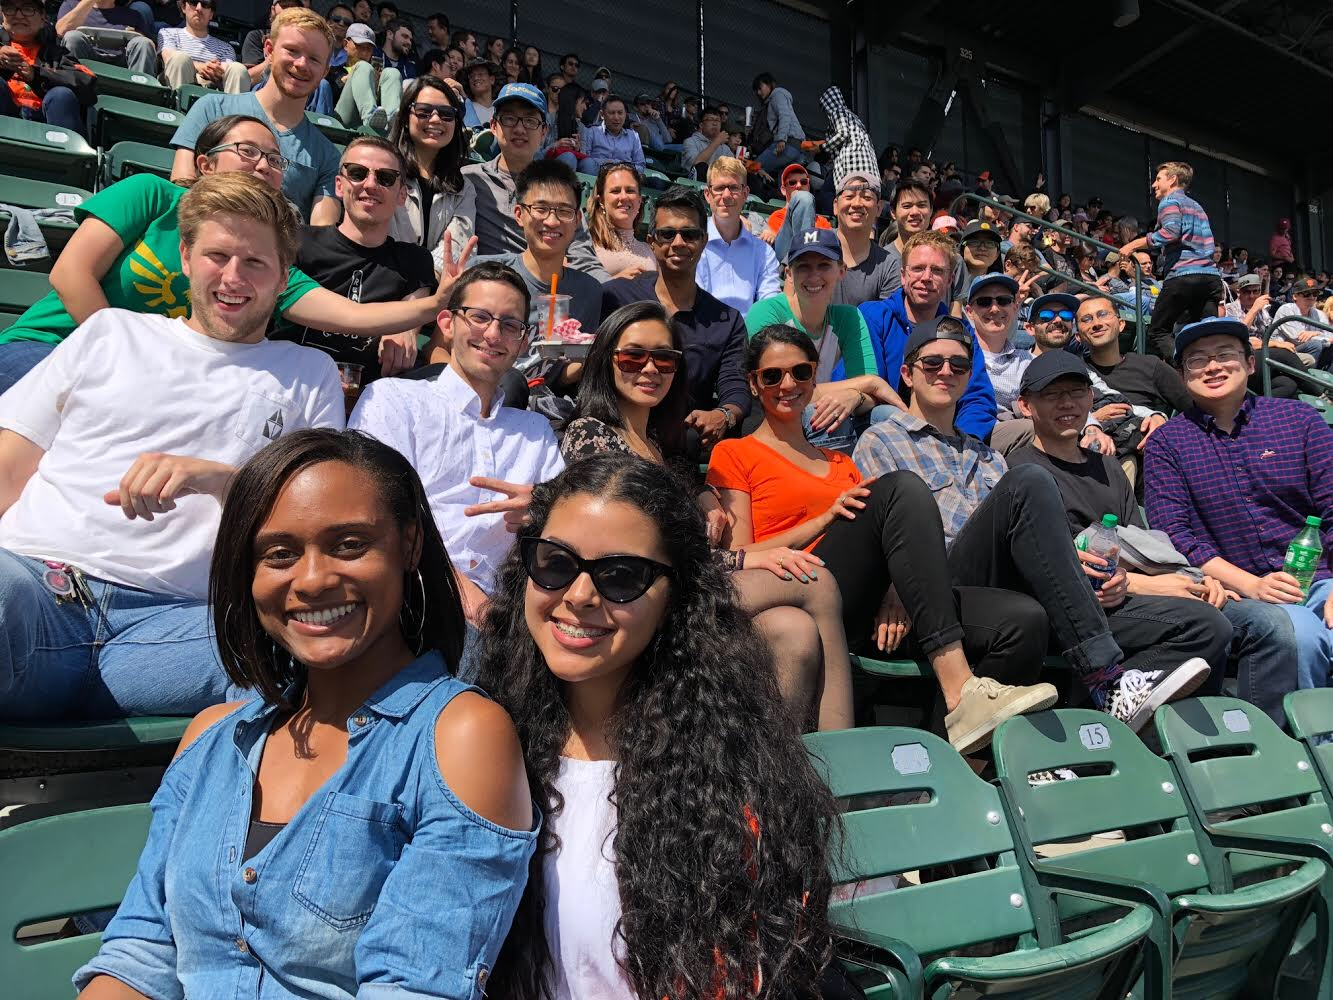 Gilbert and Feng lab at the giants game - 9/12/2018